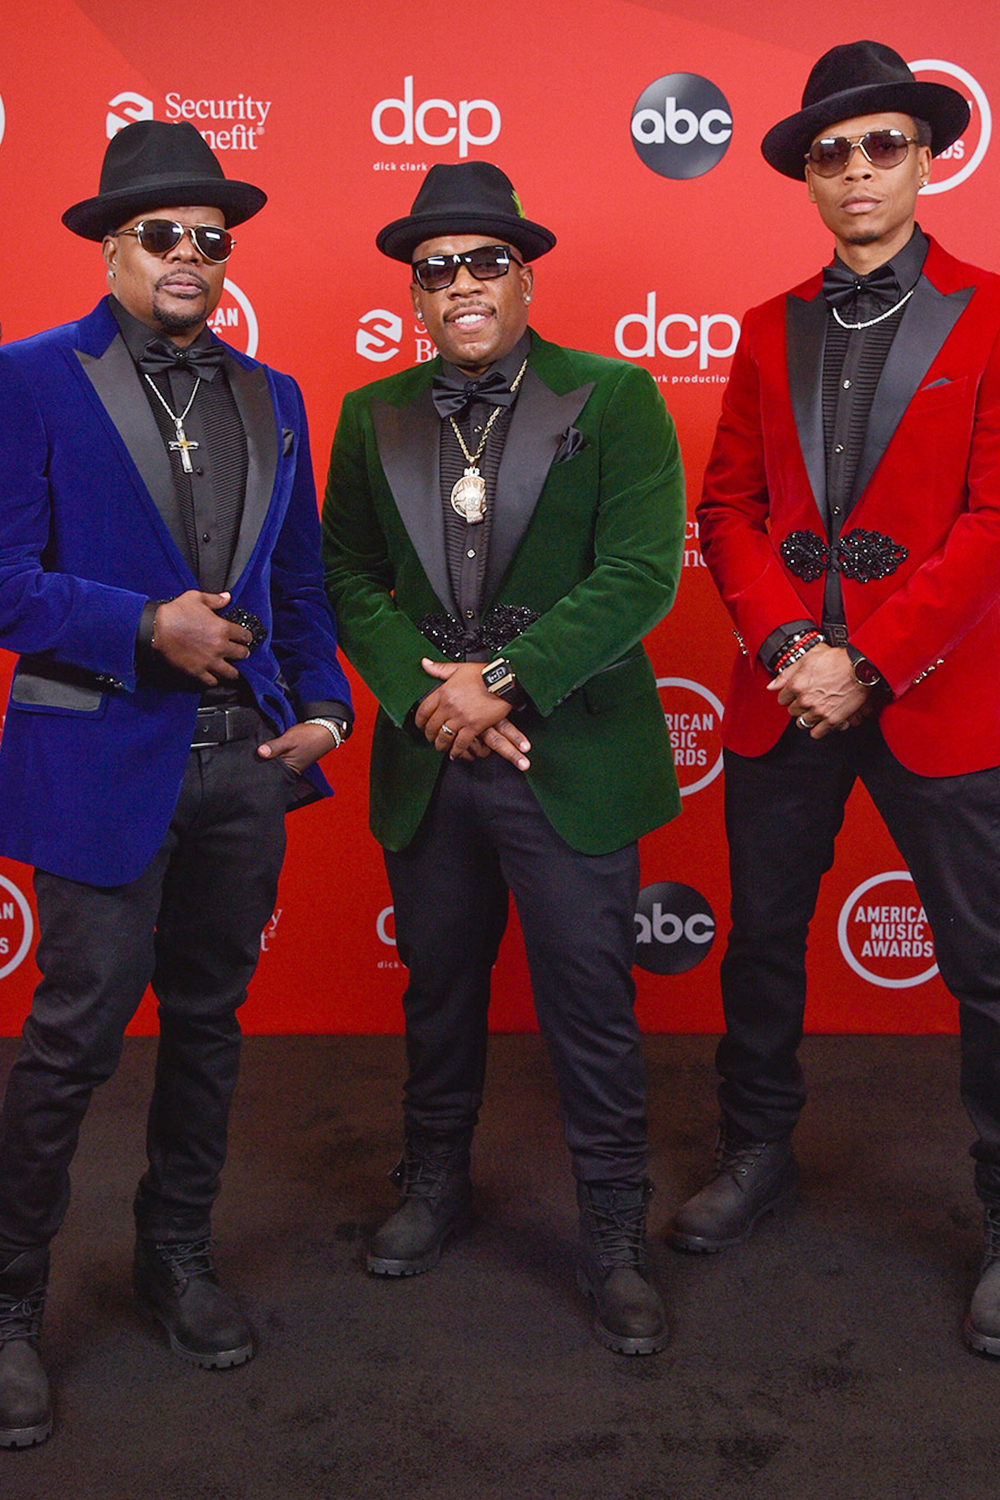 Ricky Bell, Michael Bivins, and Ronnie DeVoe of Bell Biv DeVoe